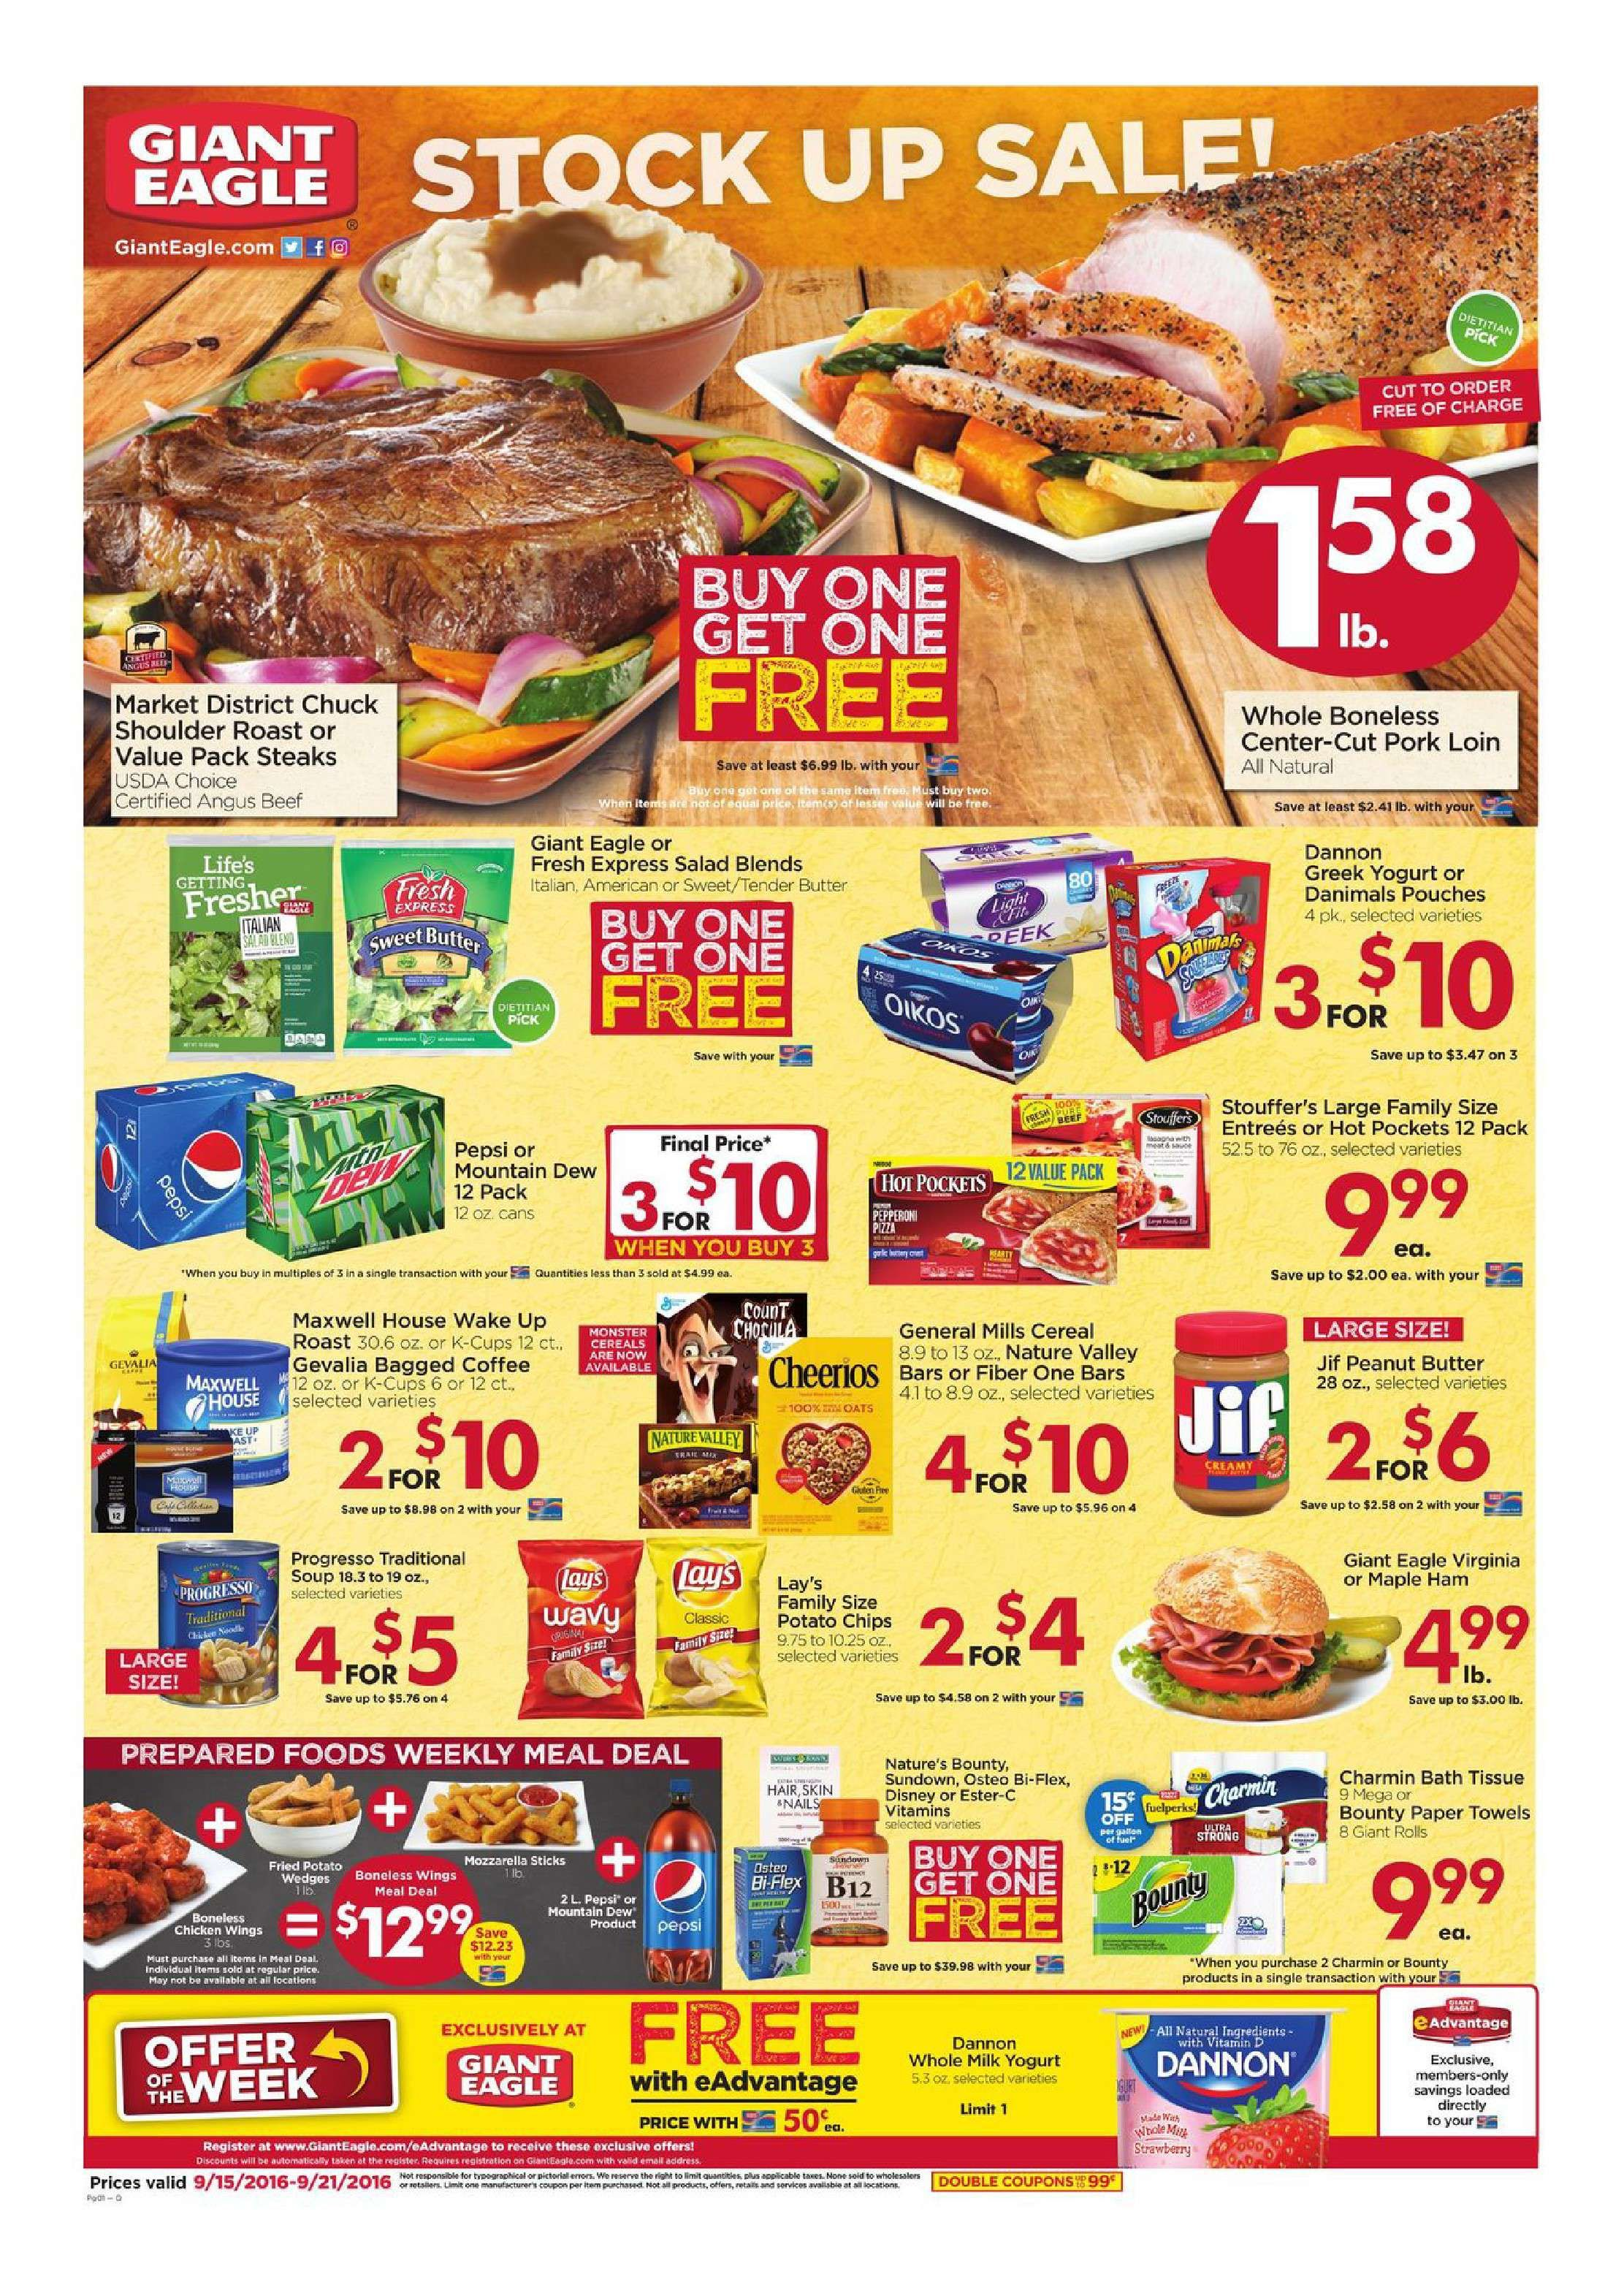 Giant eagle weekly ad september 26 october 2 2019